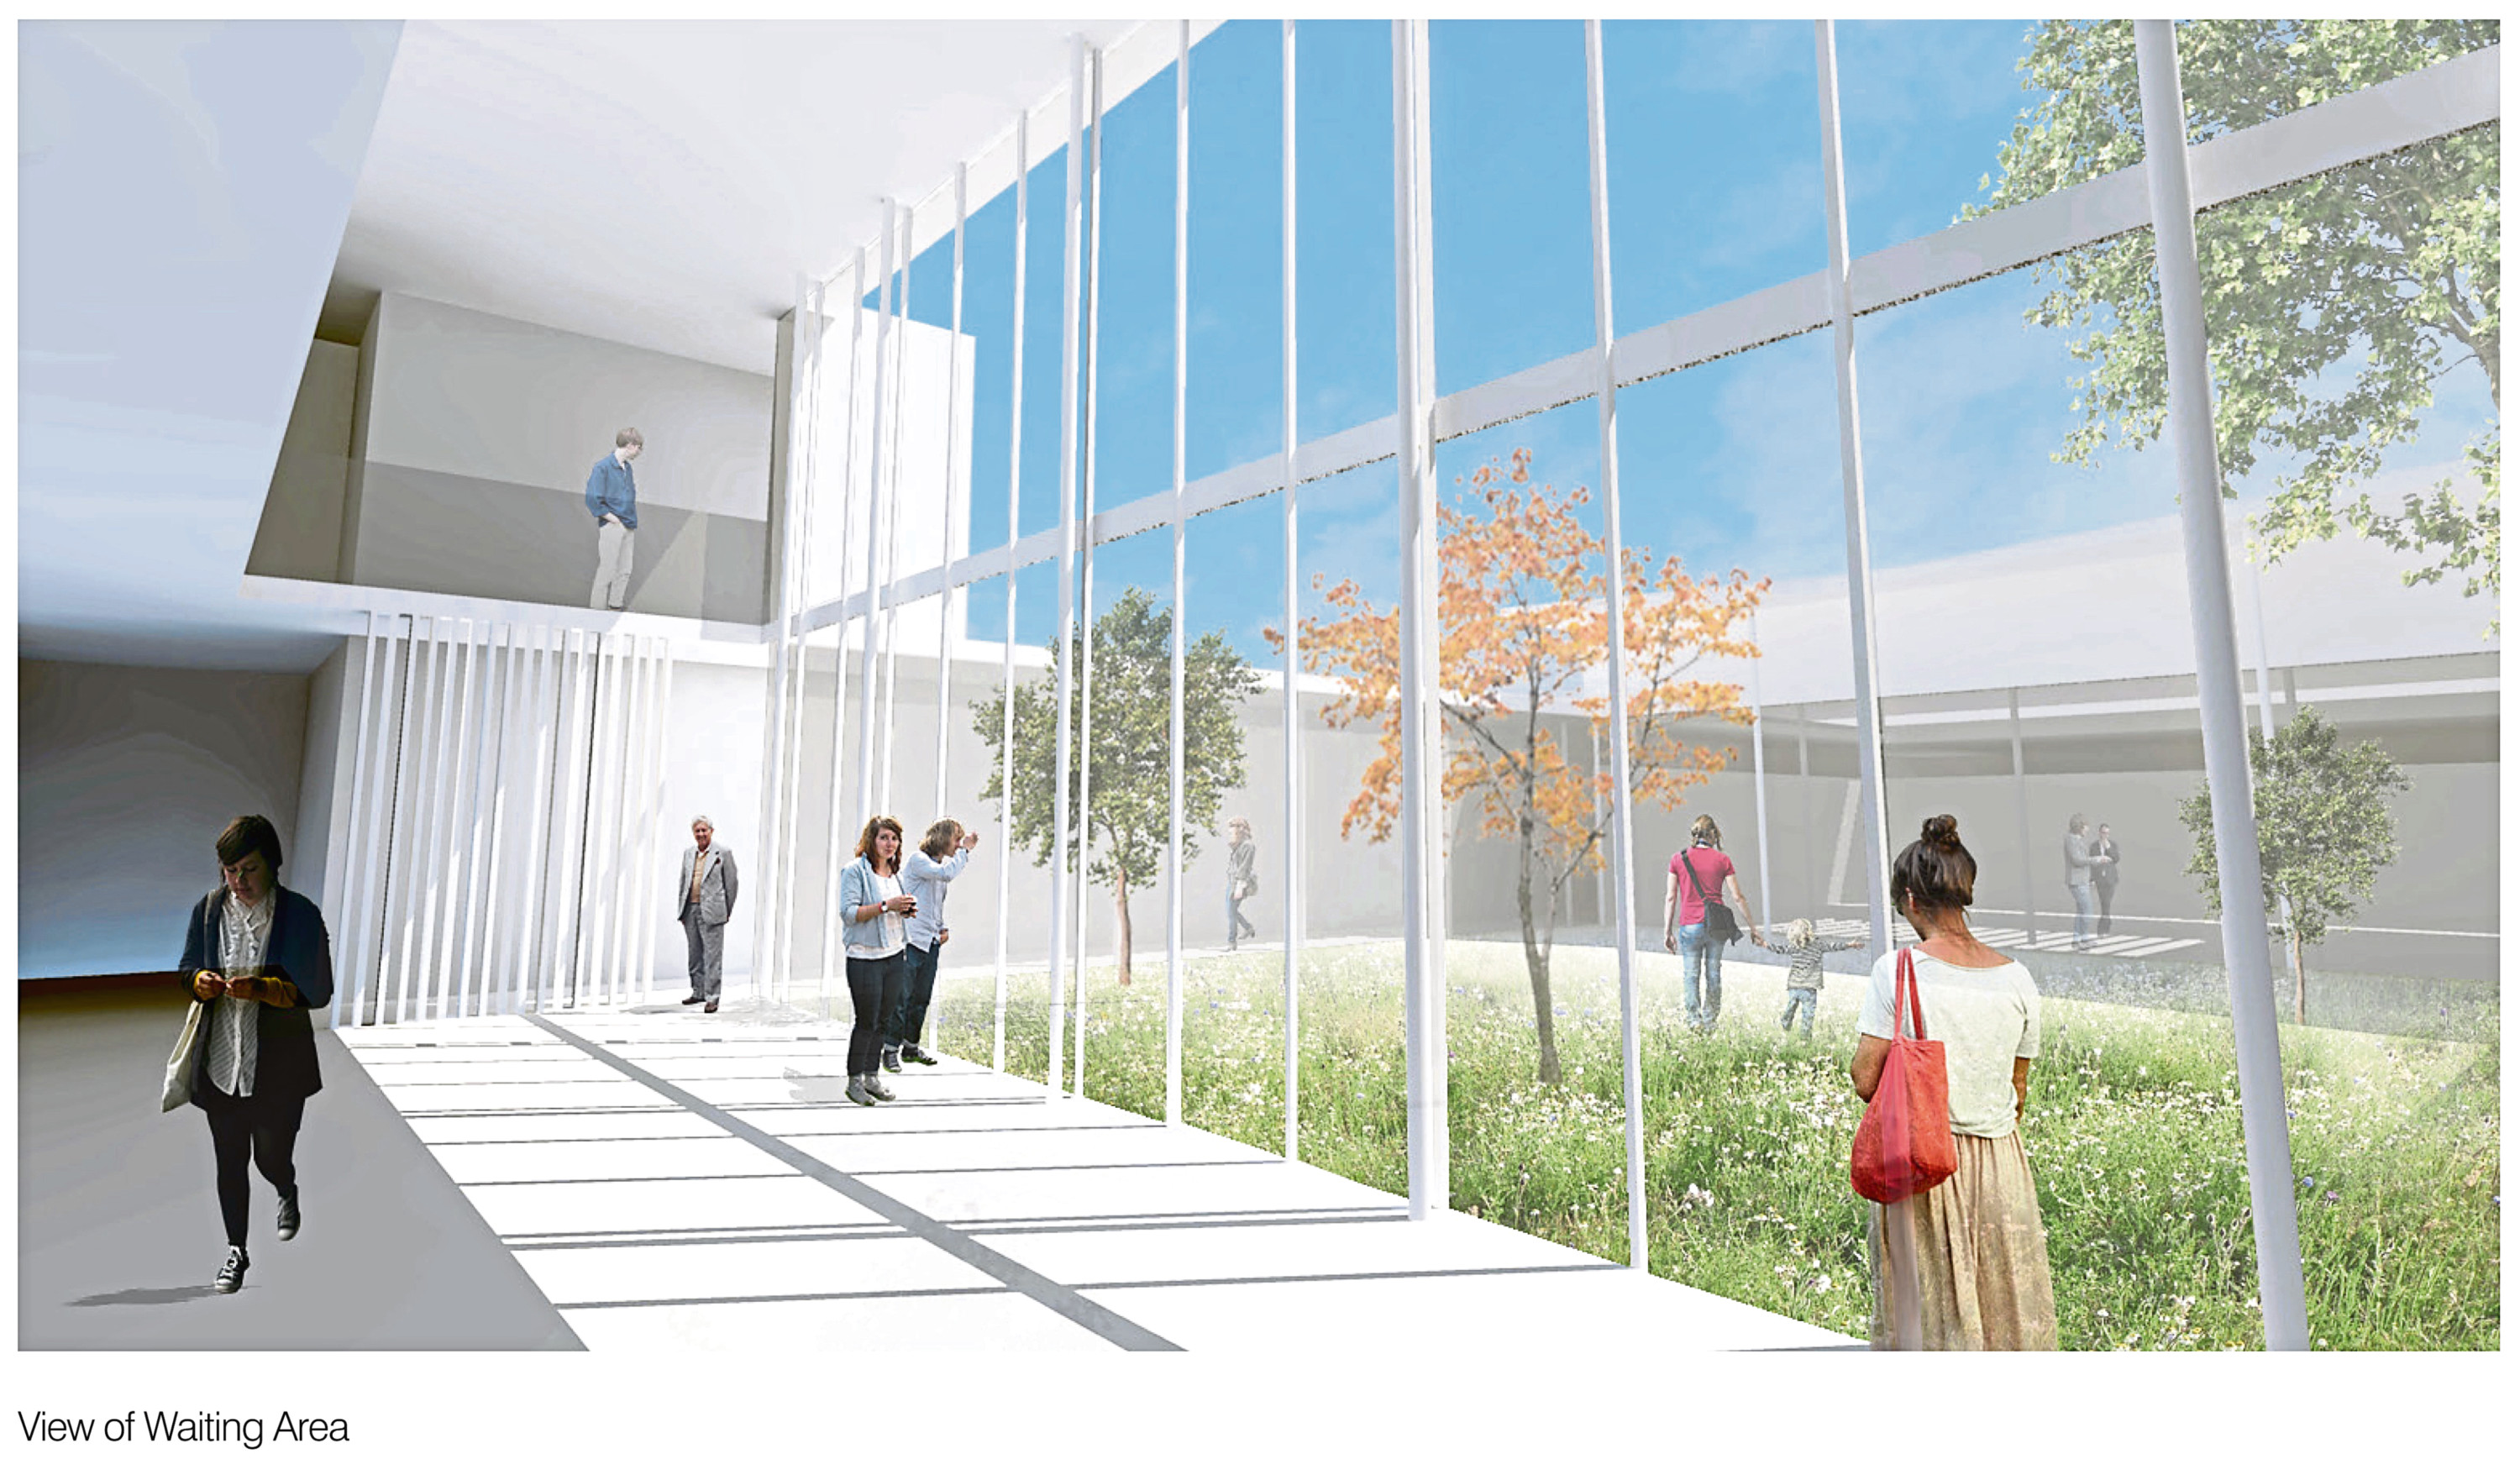 How the new health centre will look once complete